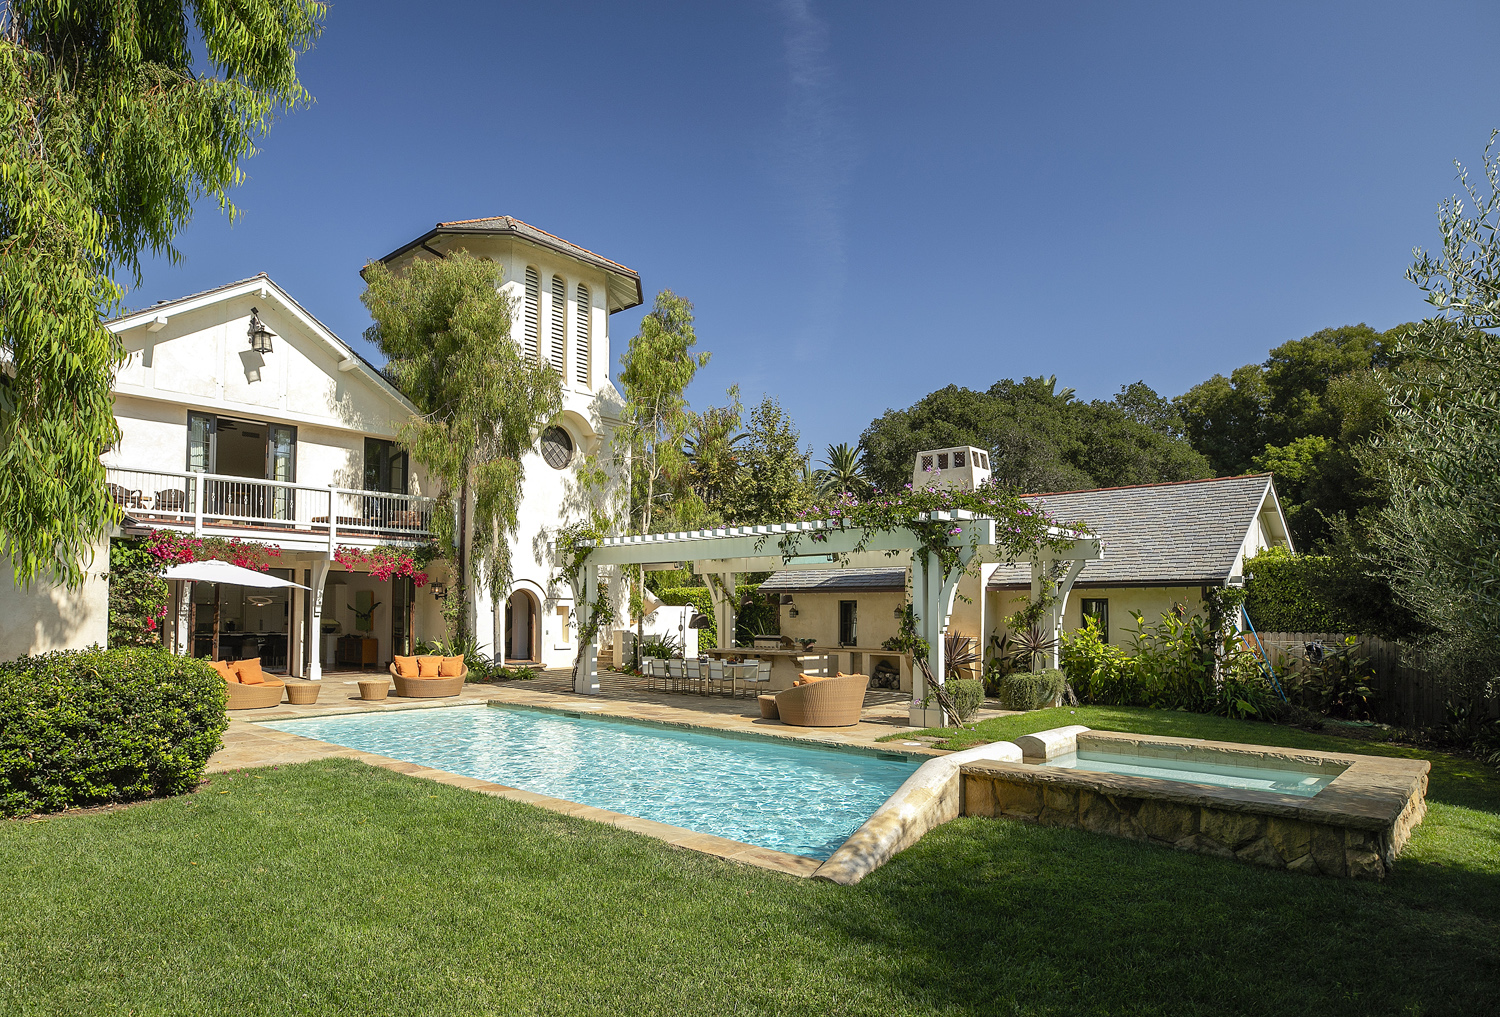 1167Summit_18-Back exterior with Pool.jpg